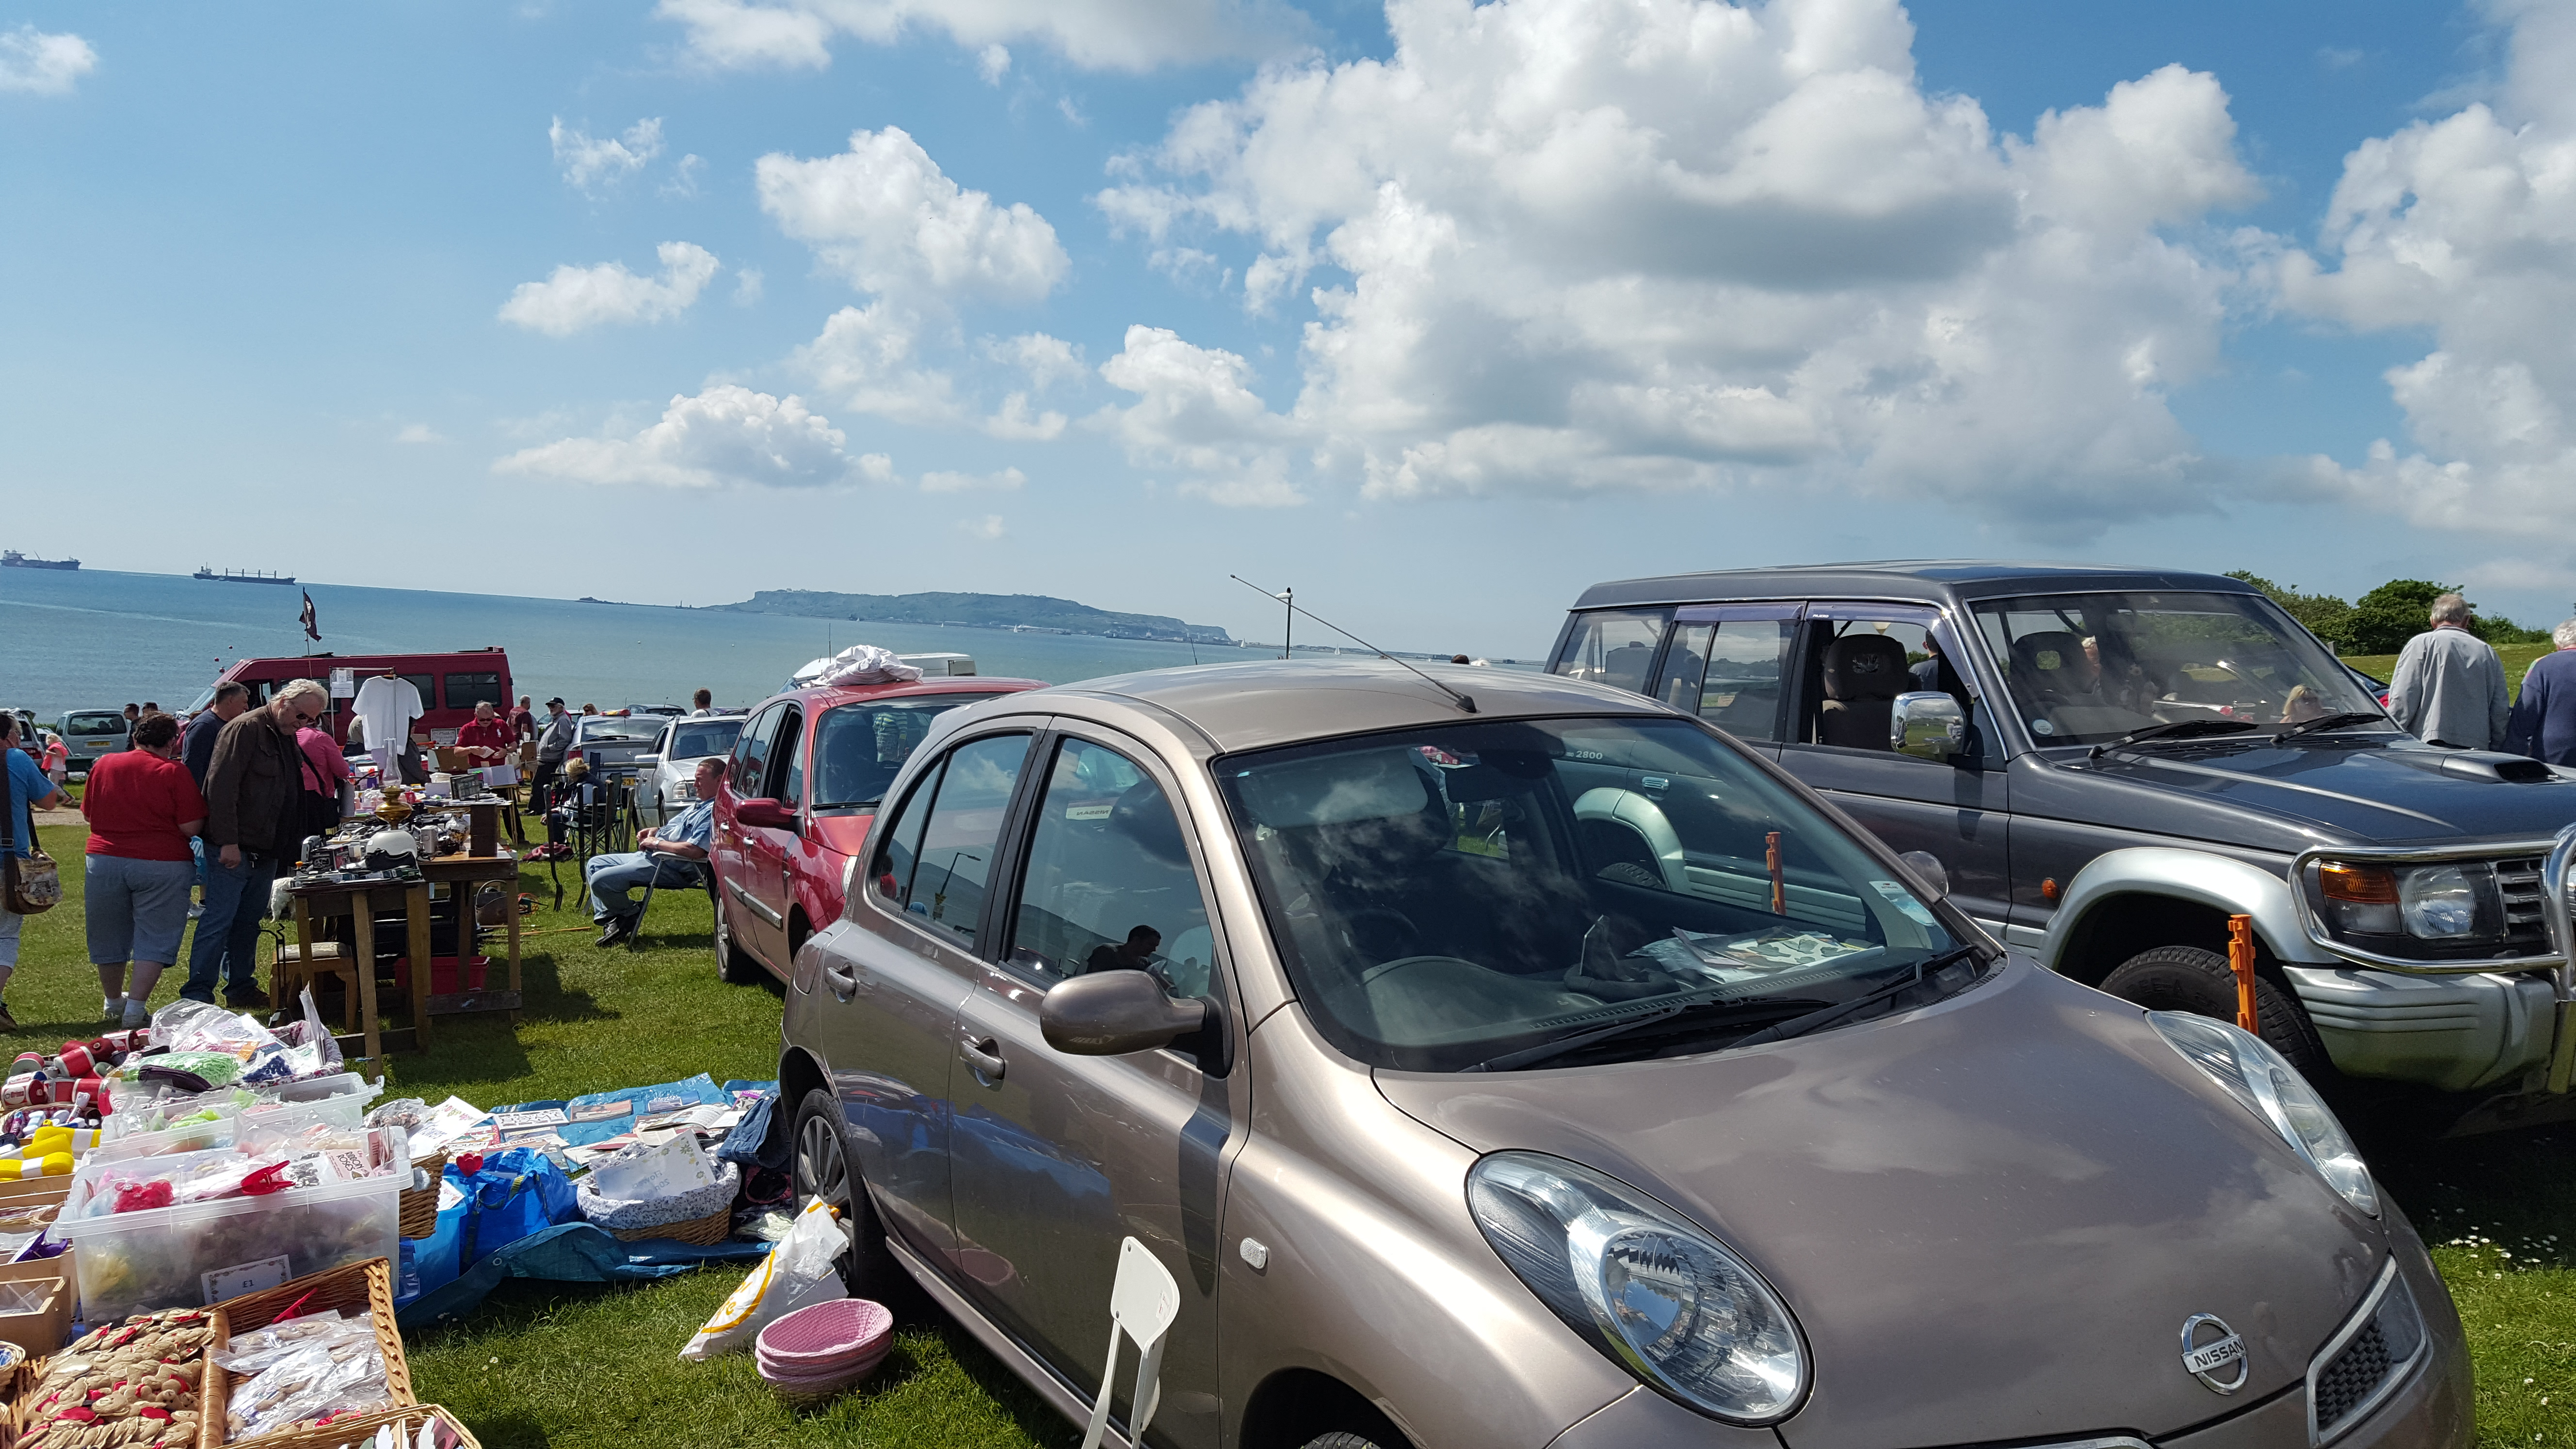 Beachside Leisure Centre Bowleaze Cove Car Boot Weymouth Dorset